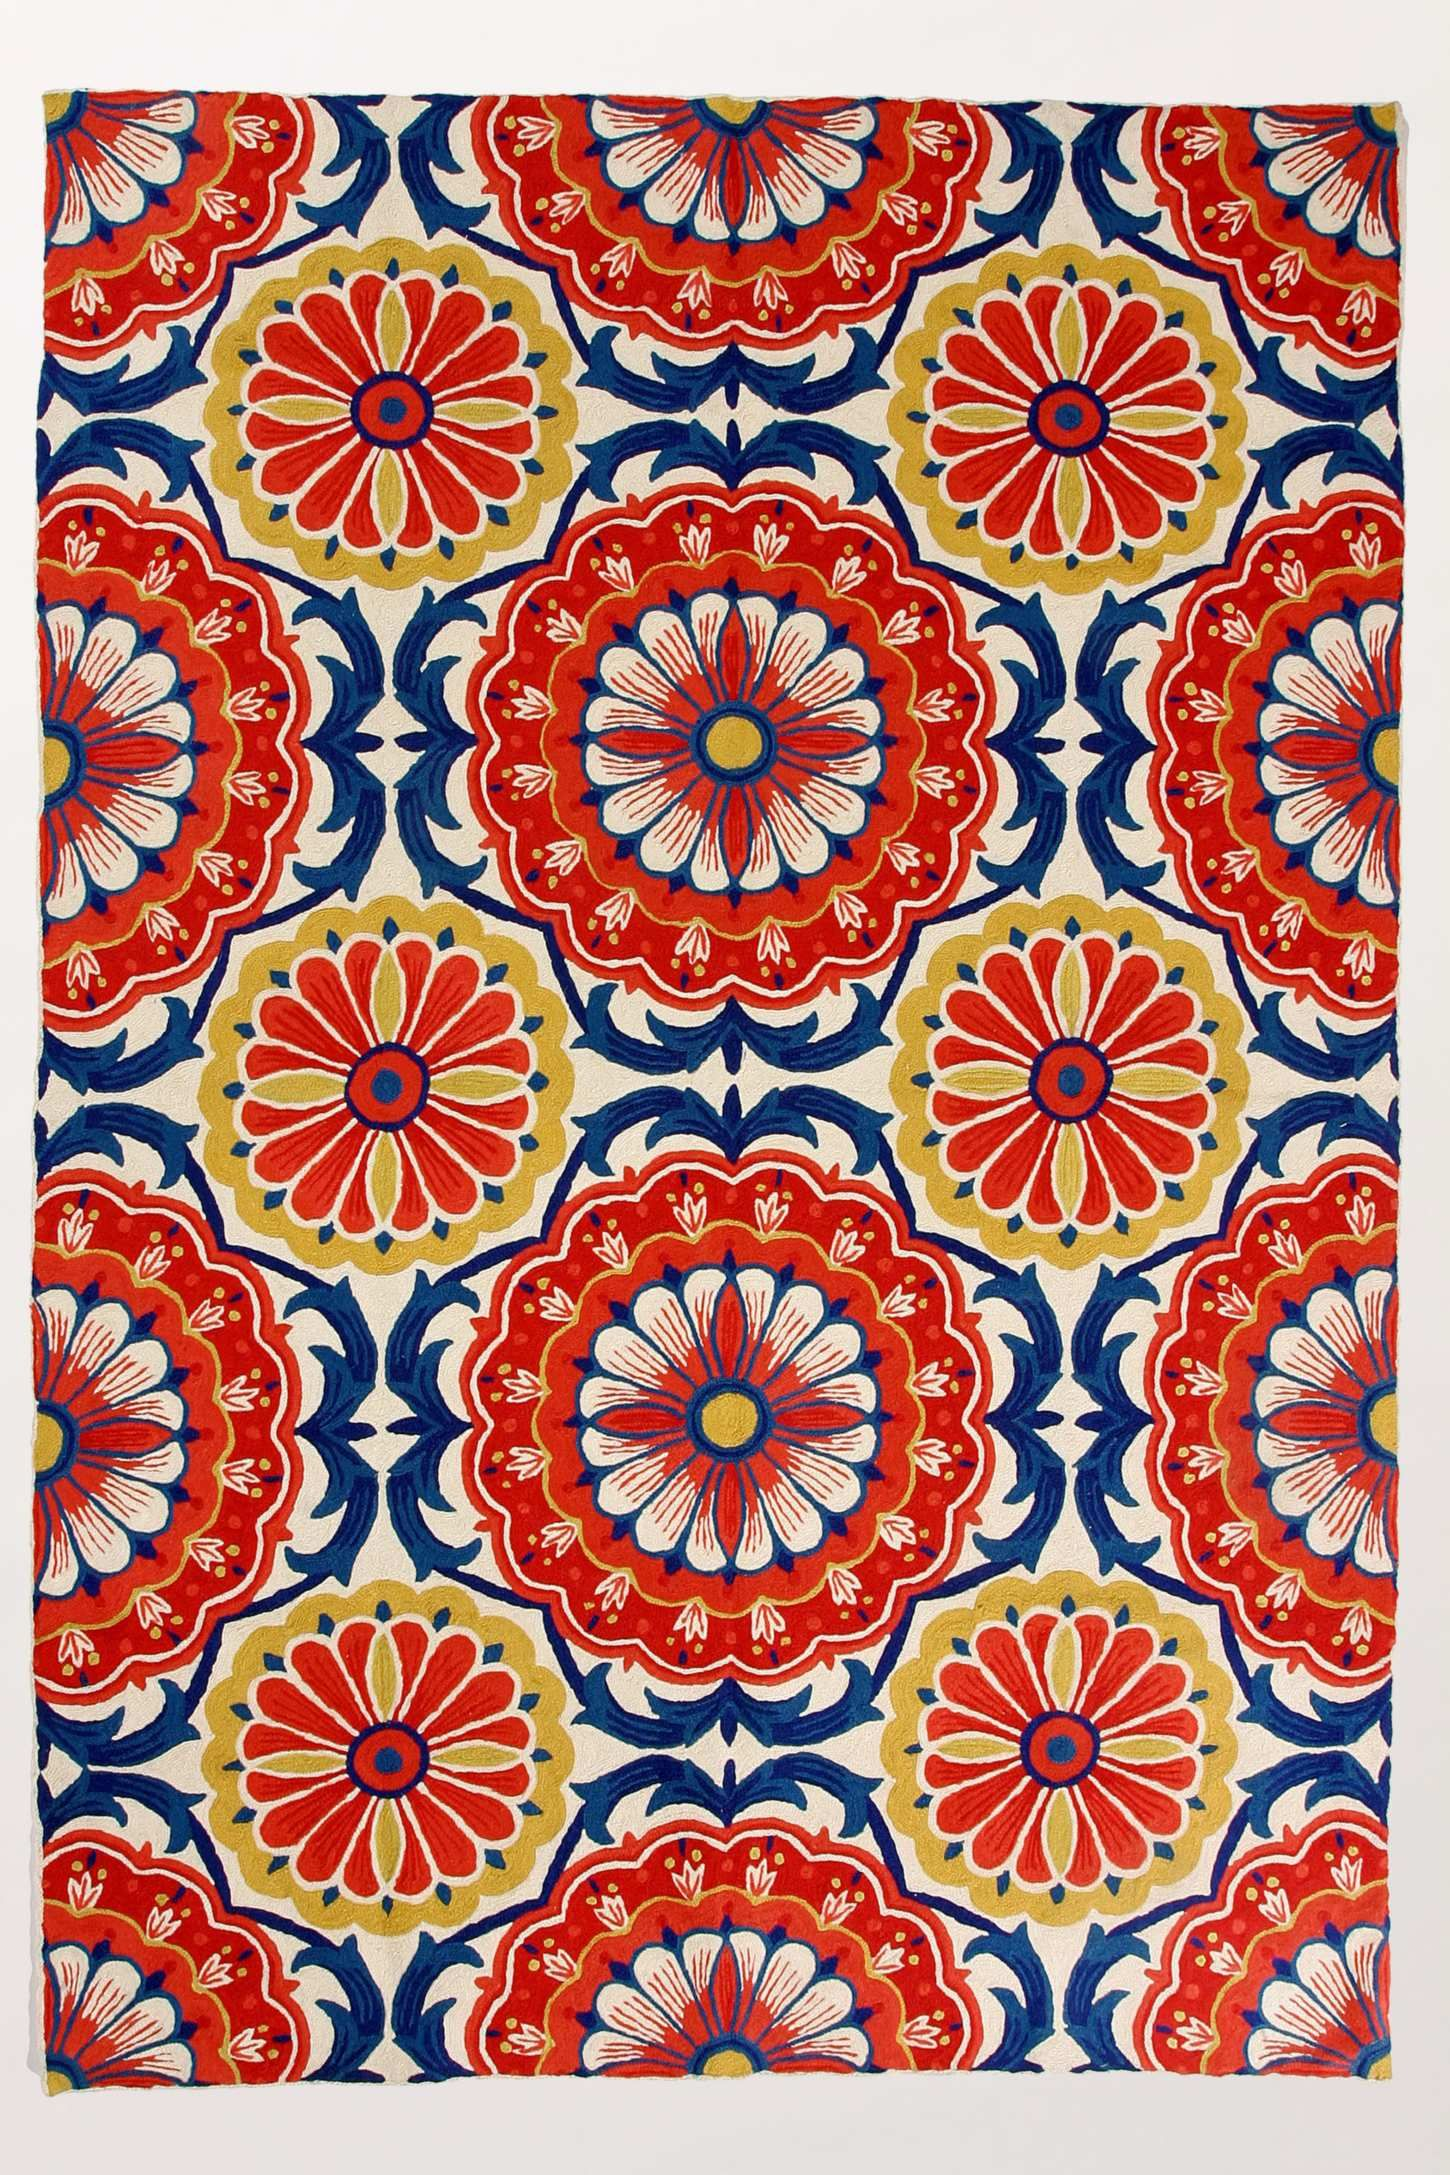 Suggest A Similar Bright & Colorful Rug? Tile patterns